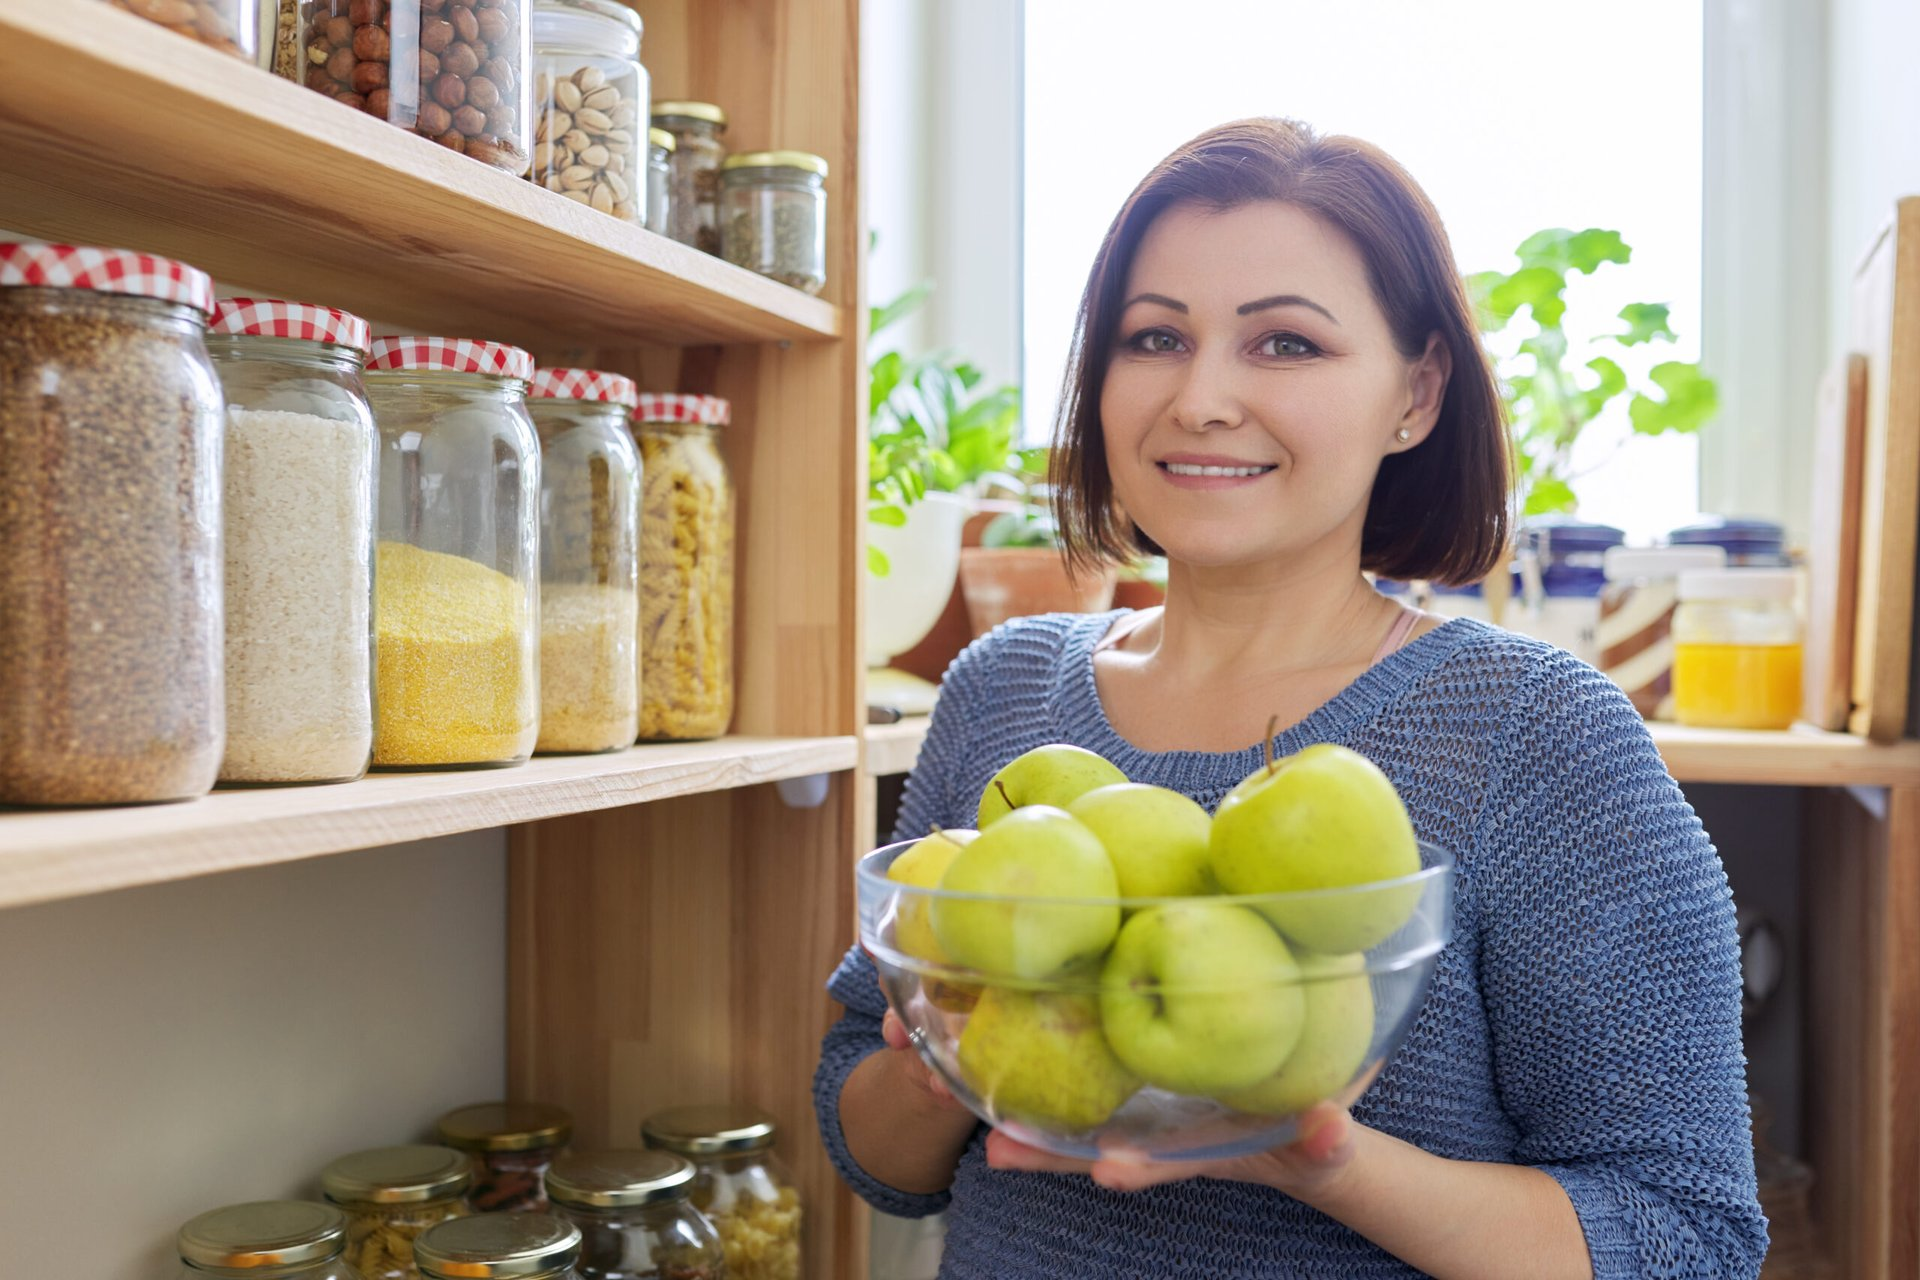 Woman adding fruit to her pantry